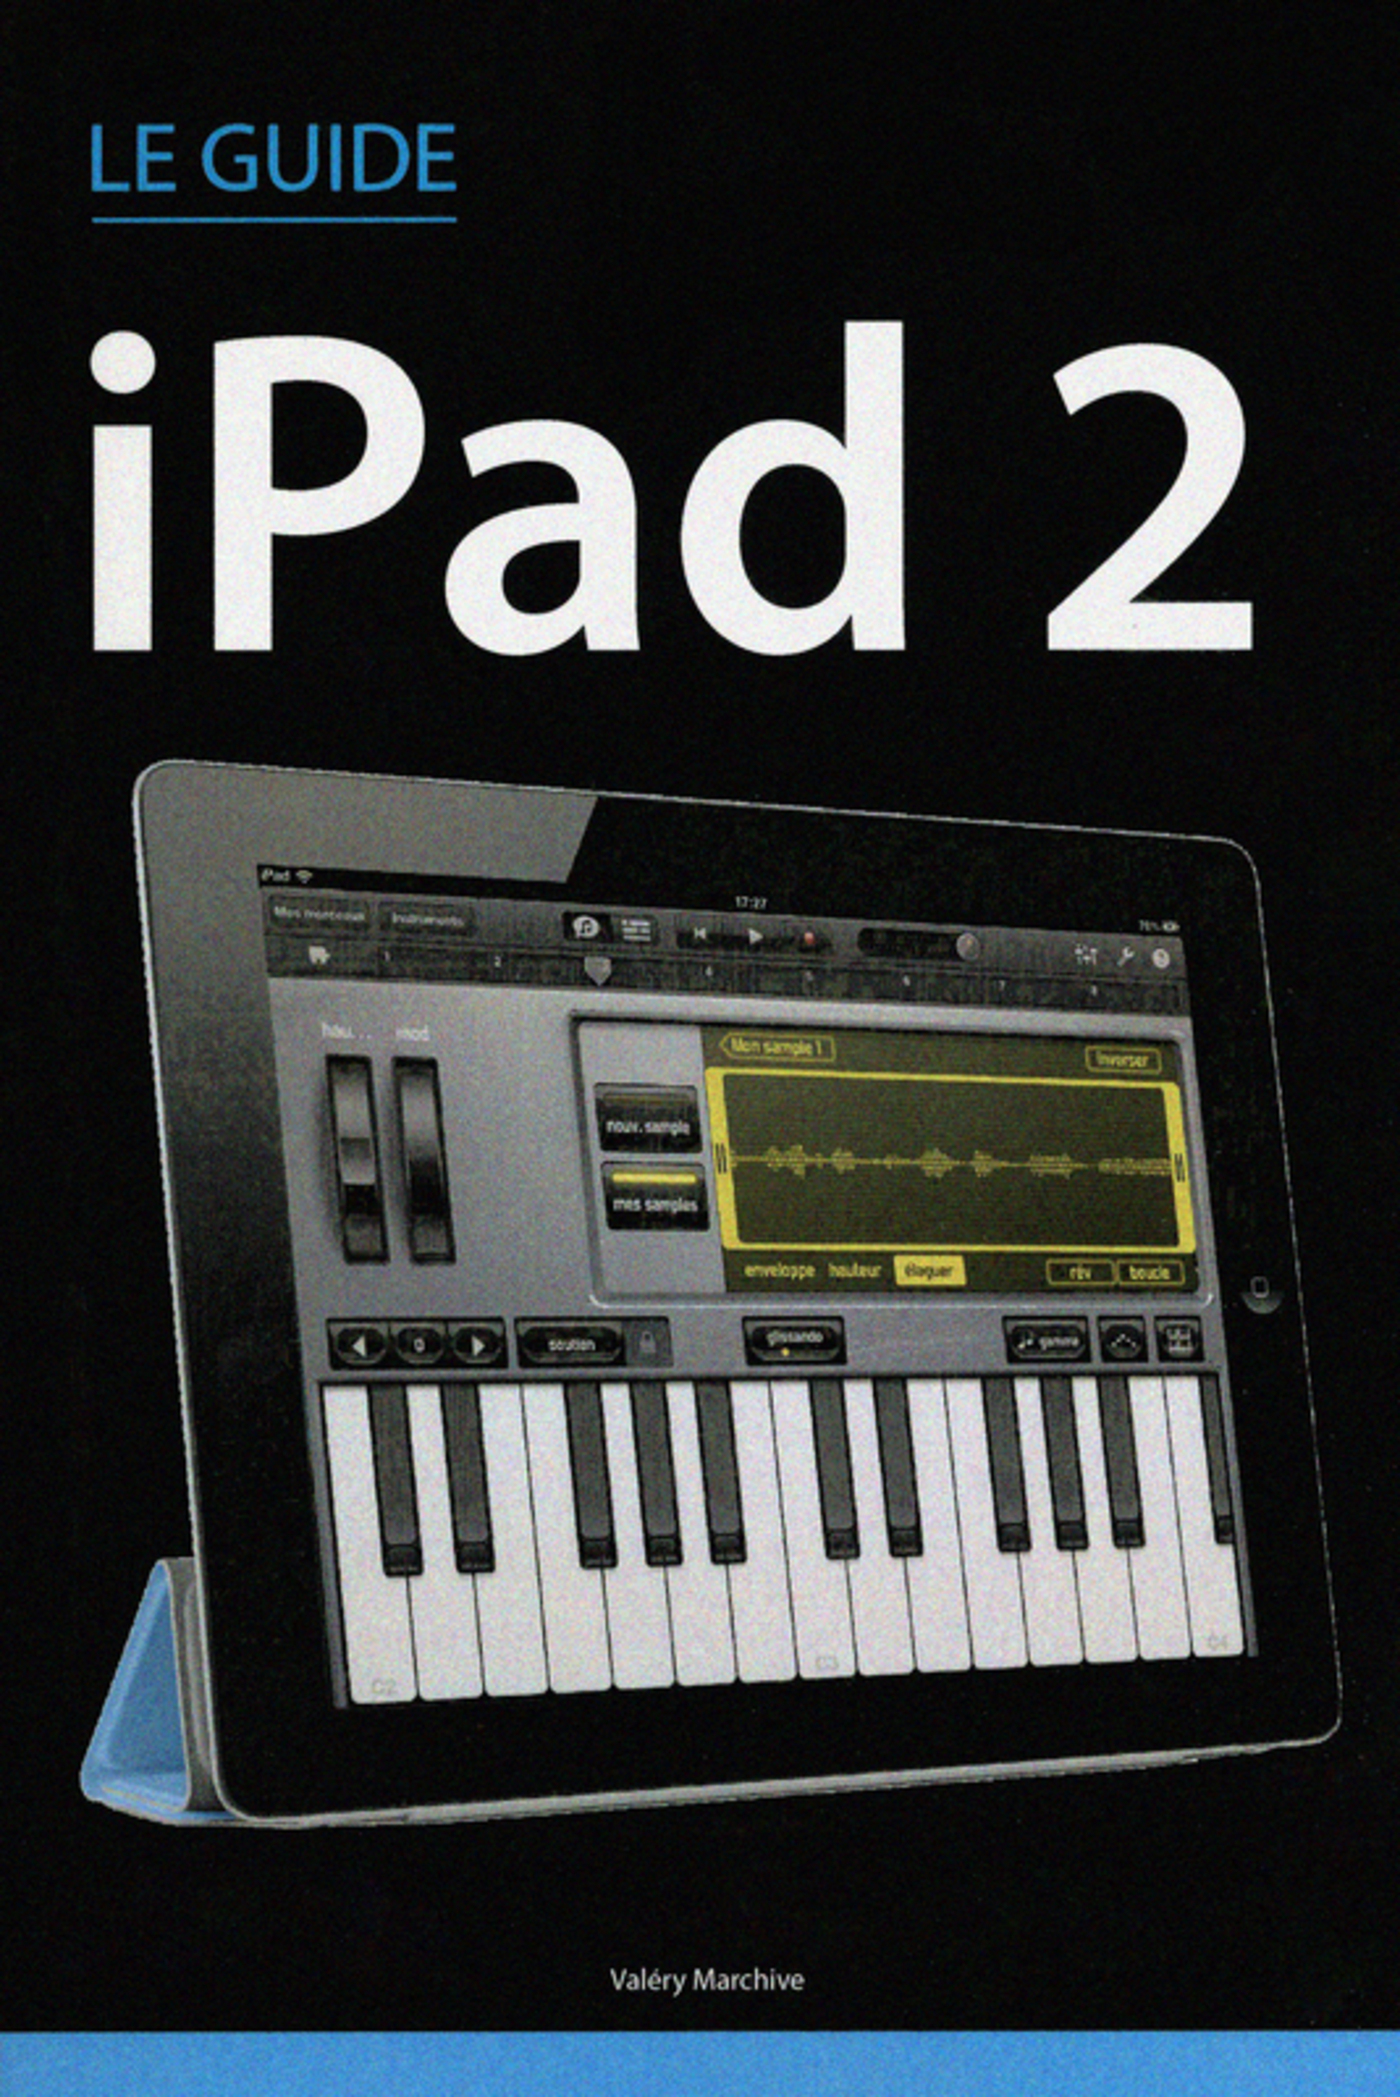 Le guide iPad 2 (ebook)